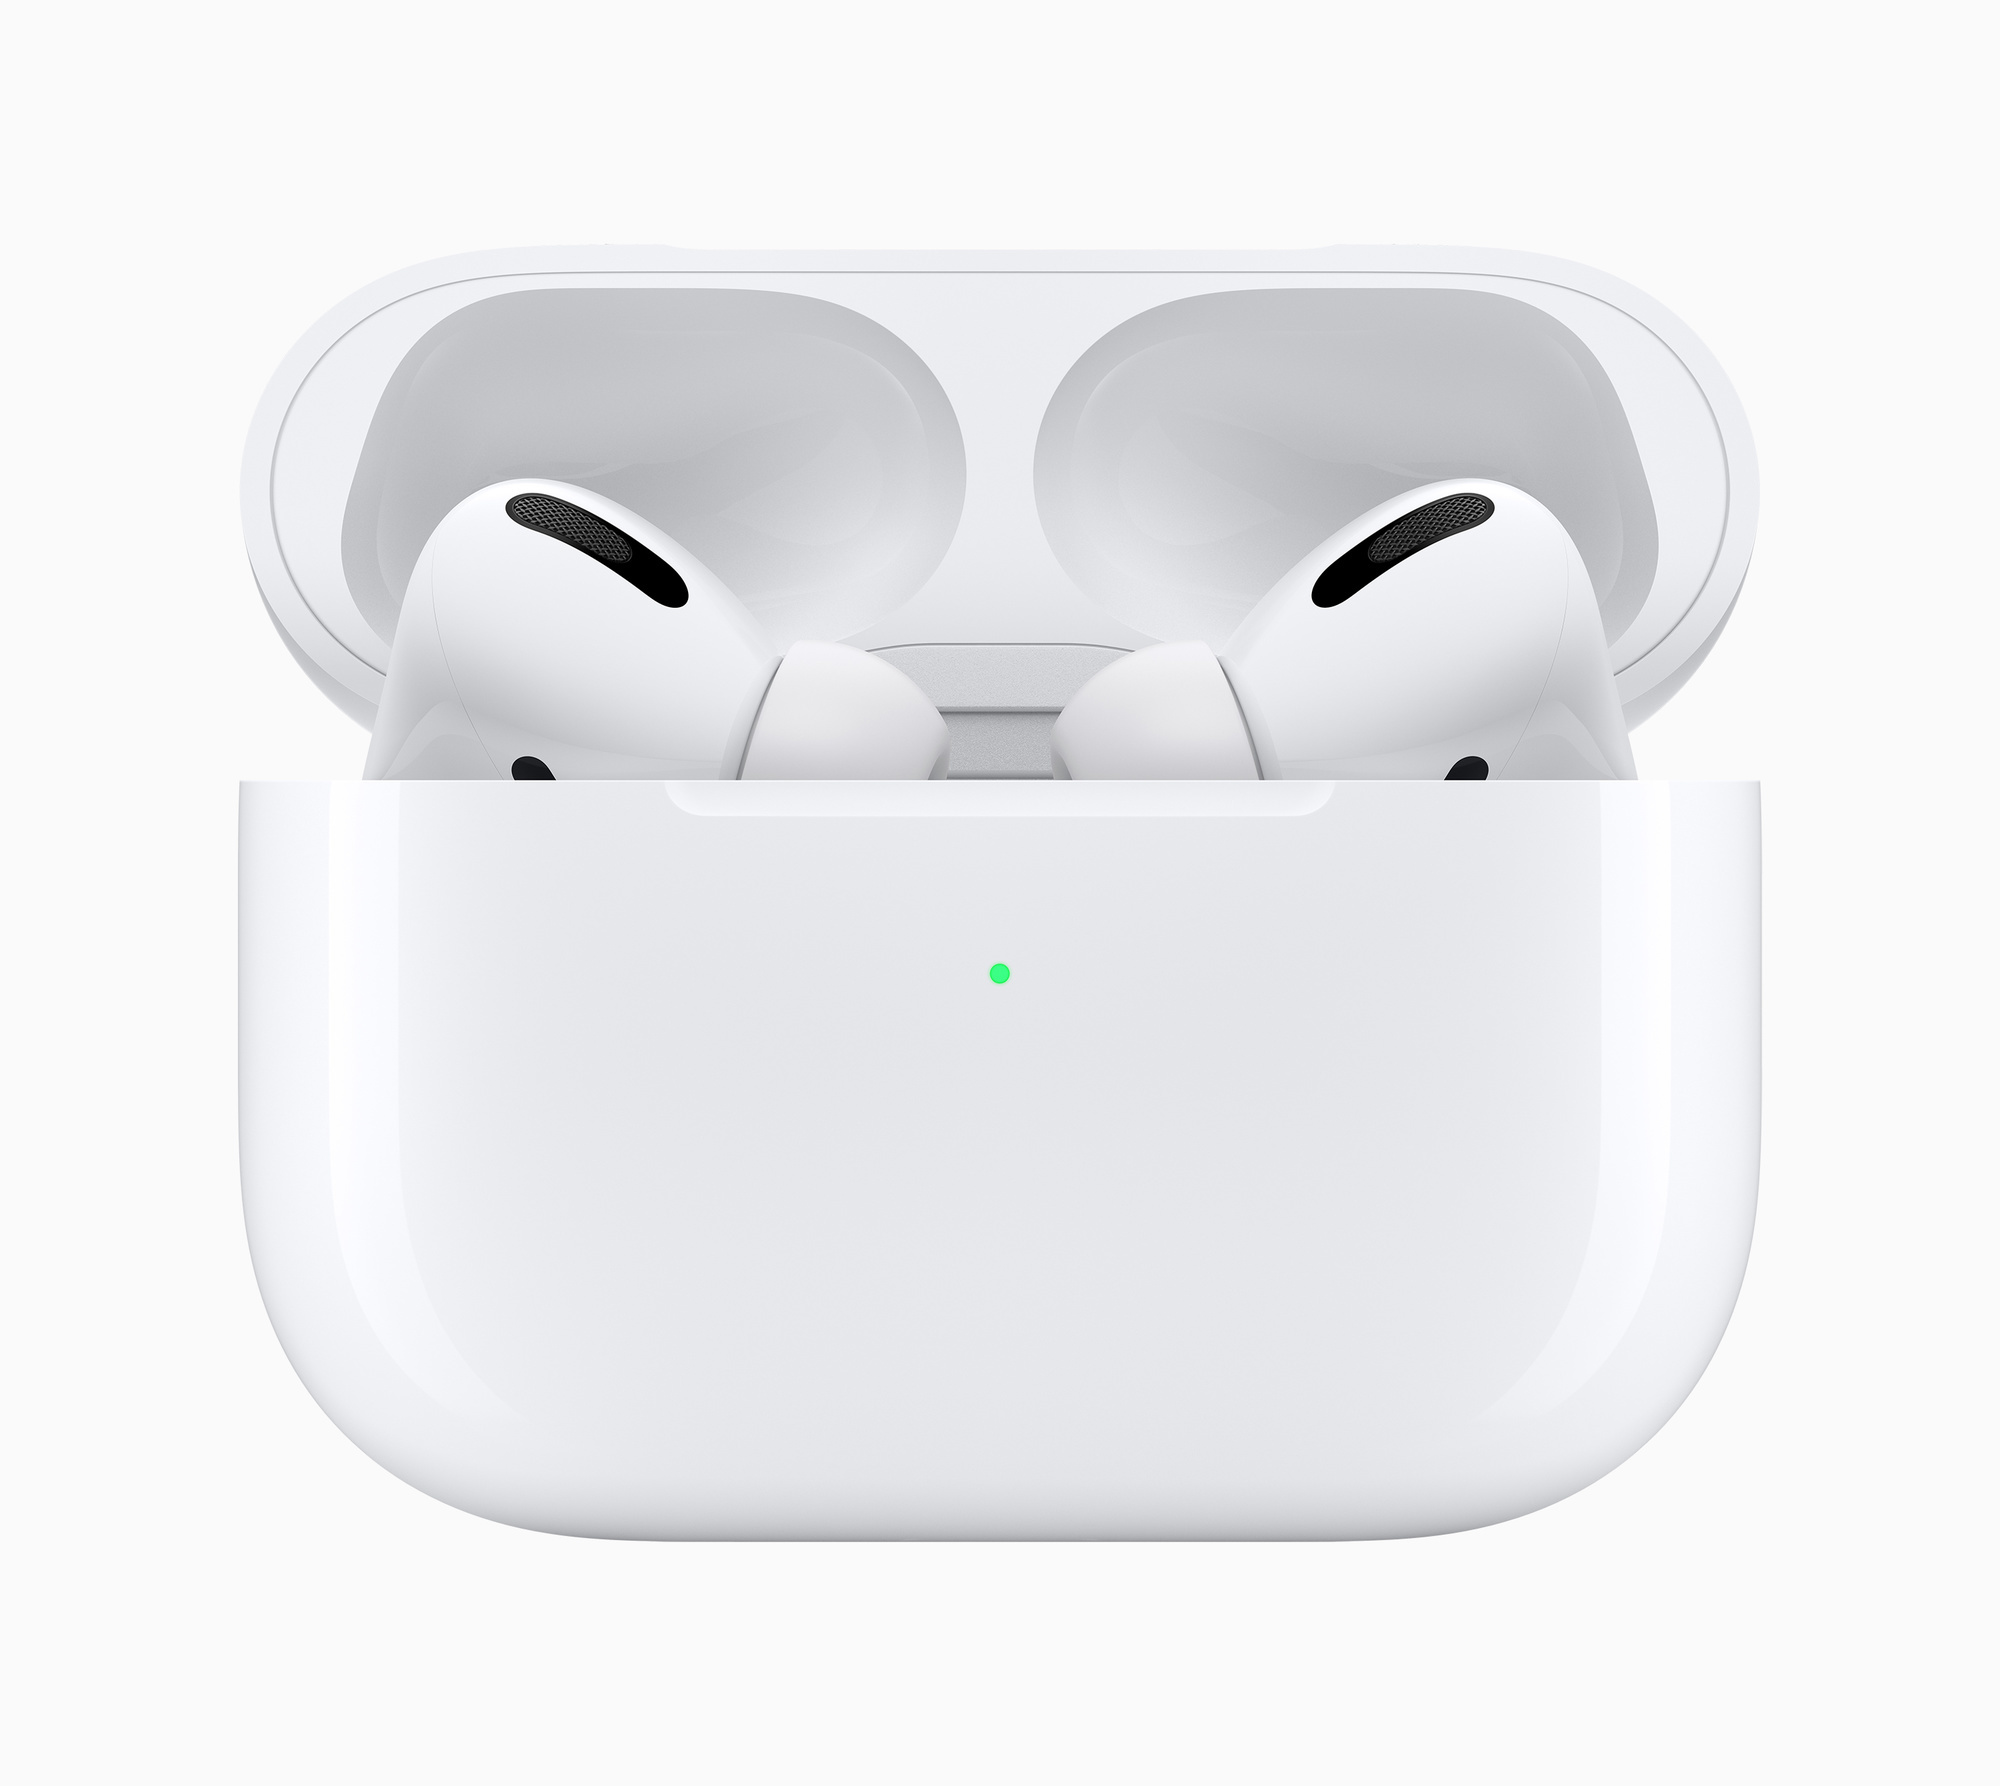 Apple Airpods Pro, Apple